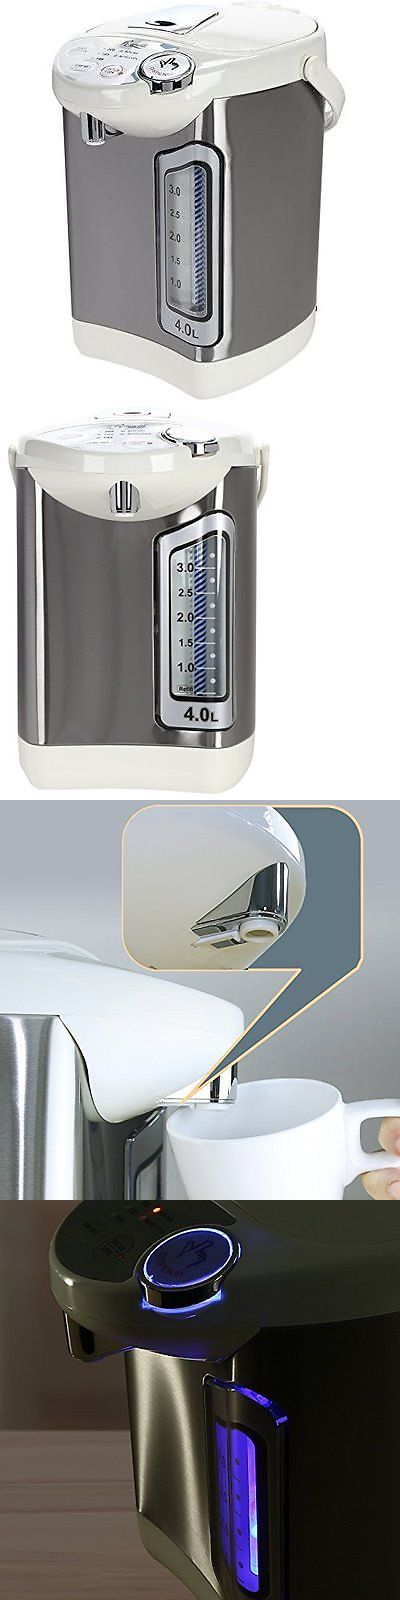 Hot Water Pots 177755: Rosewill Electric Hot Water Dispenser With Auto Feed Hot Water Boiler And New -> BUY IT NOW ONLY: $69.89 on eBay!